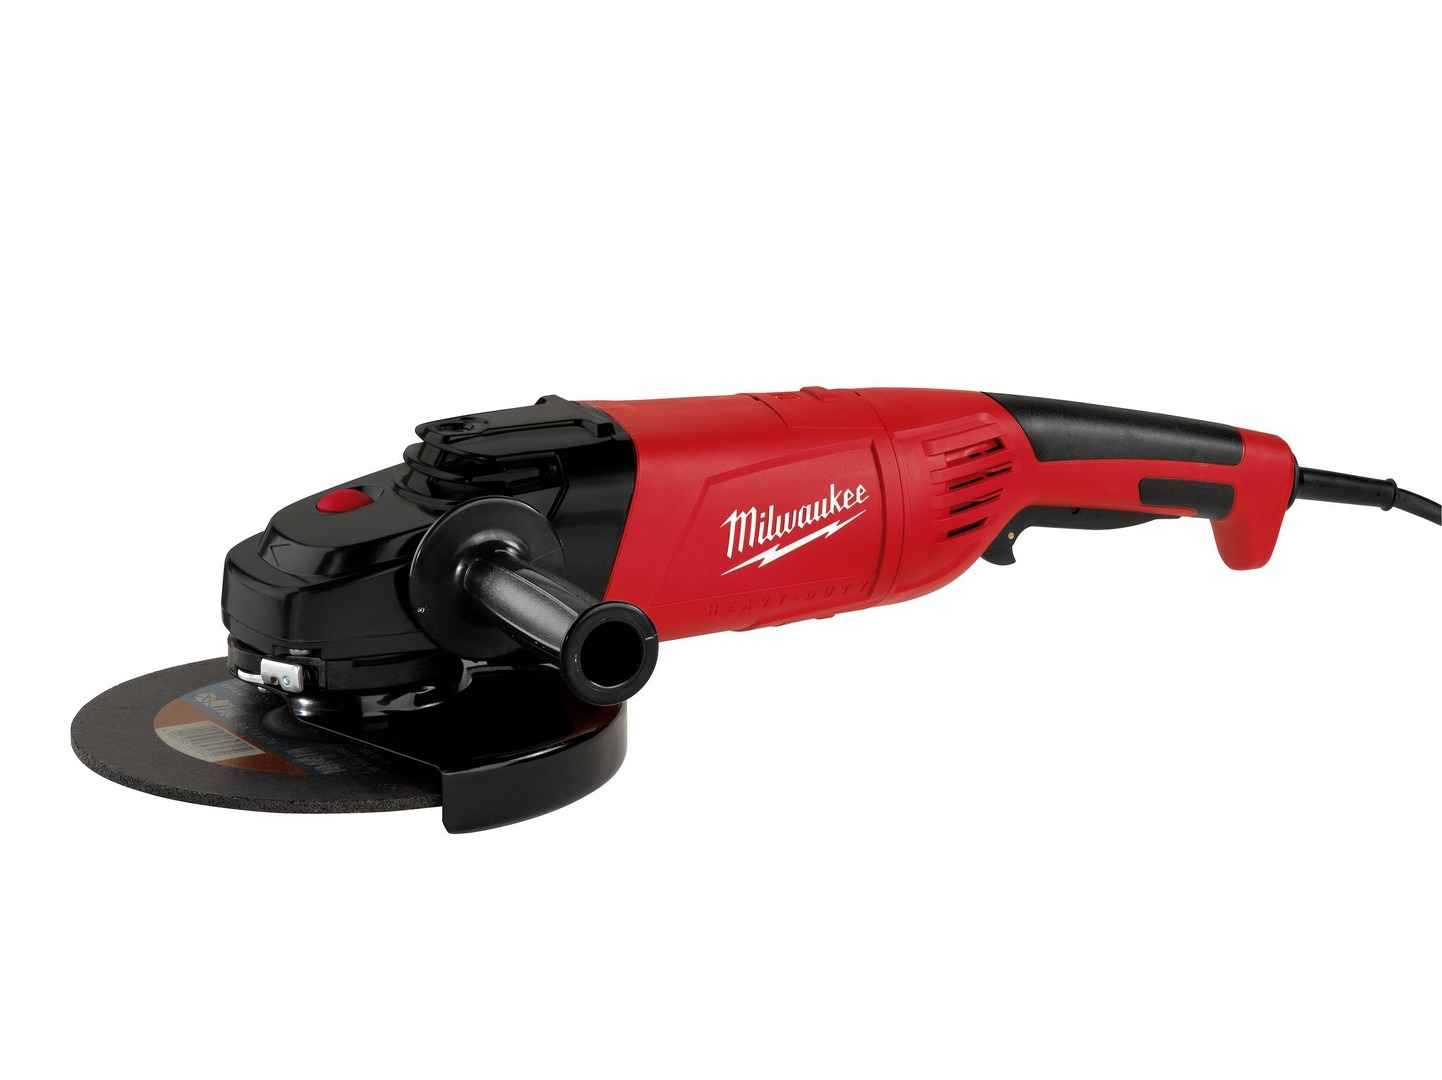 Milwaukee AGV22-230DMS 230mm Angle Grinder 110v 5.4Kg